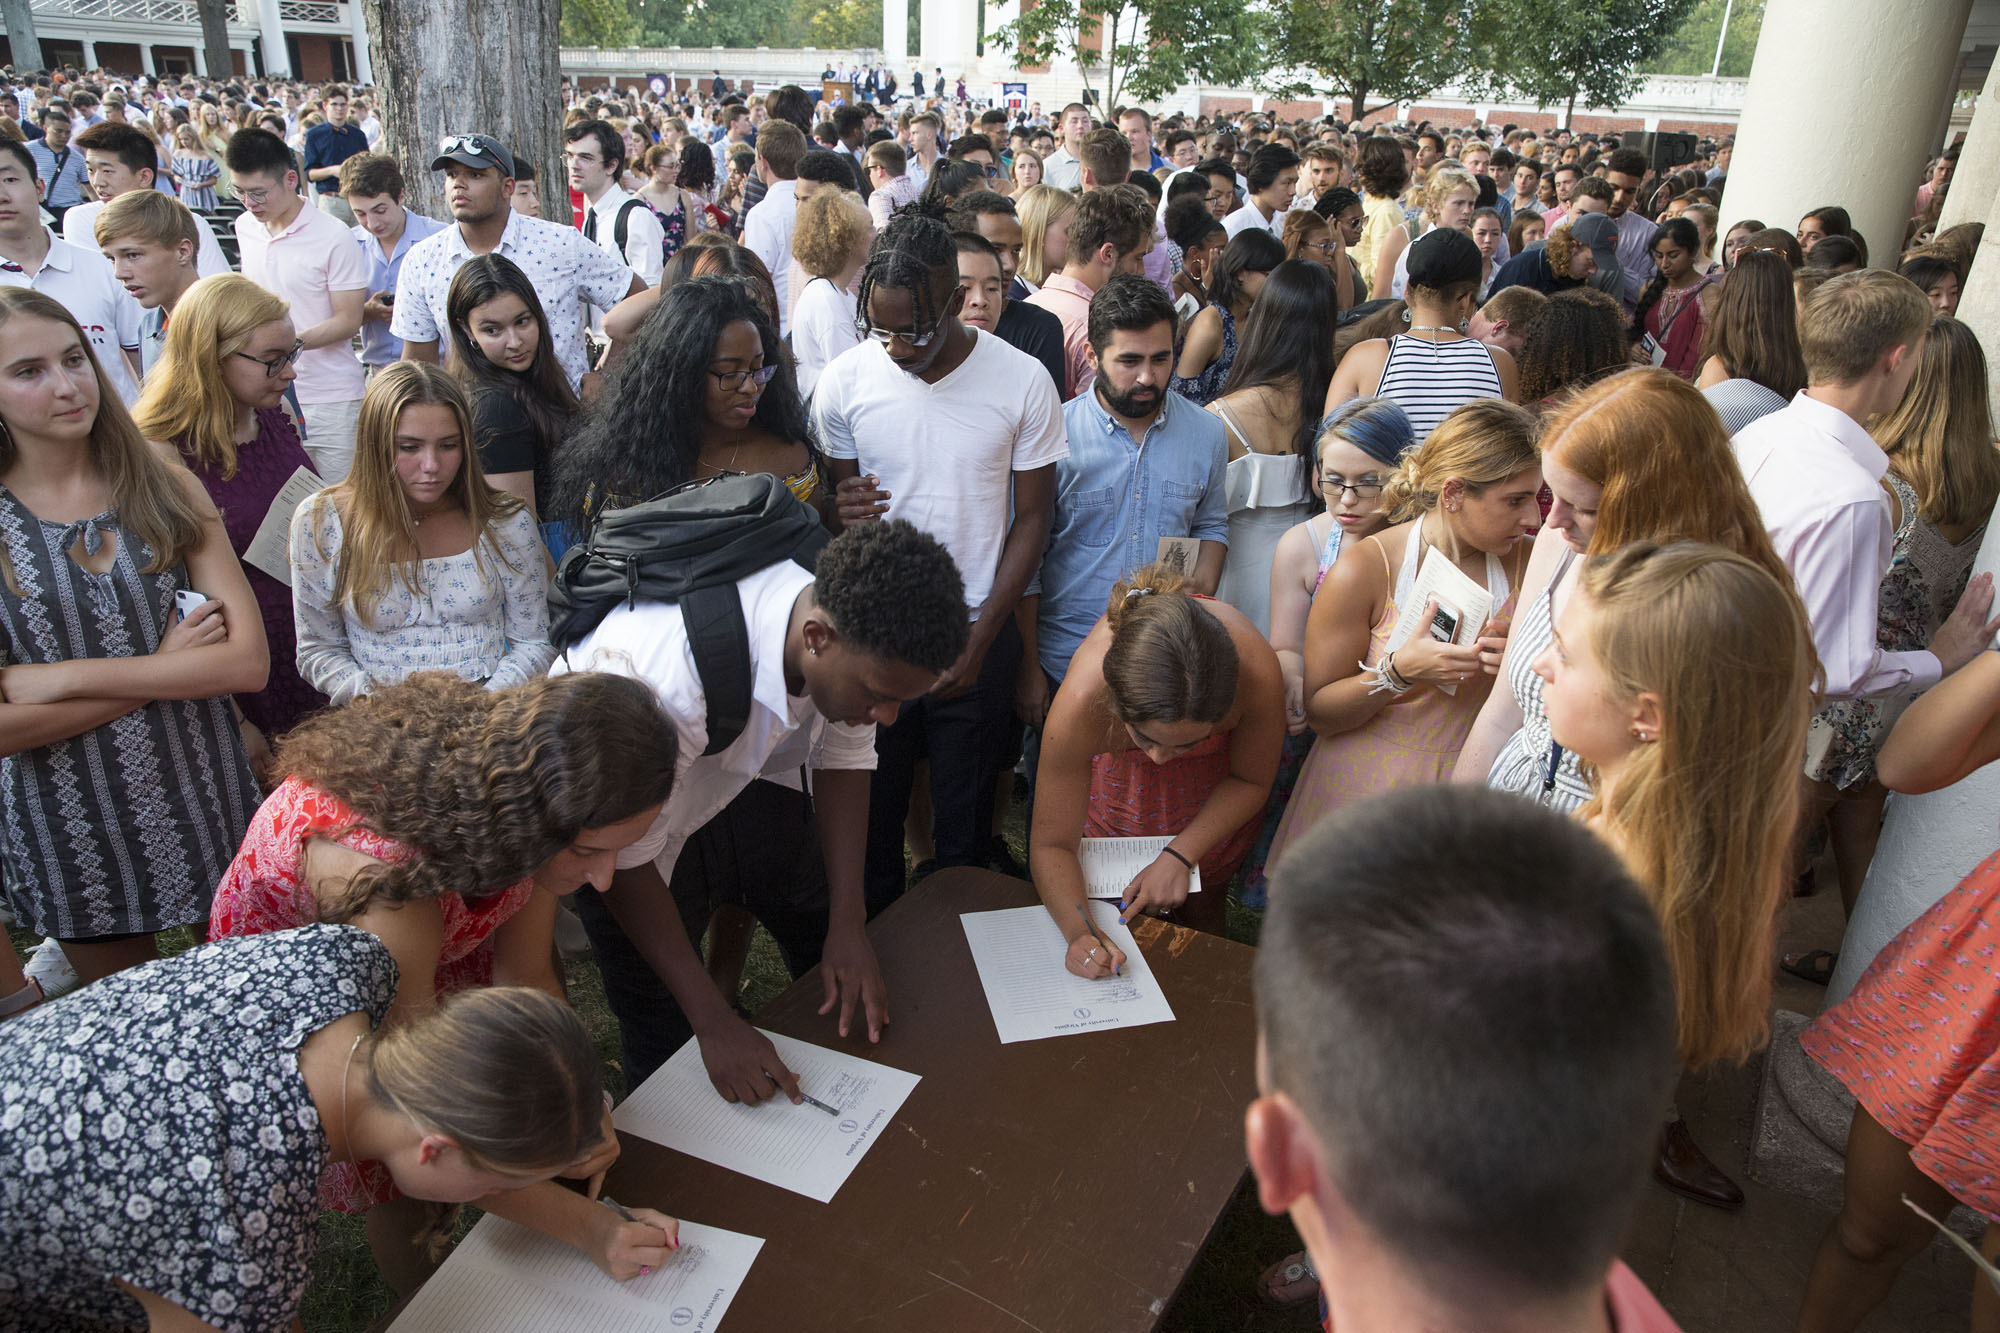 At the end of the ceremony, each new student officially signed the honor pledge.